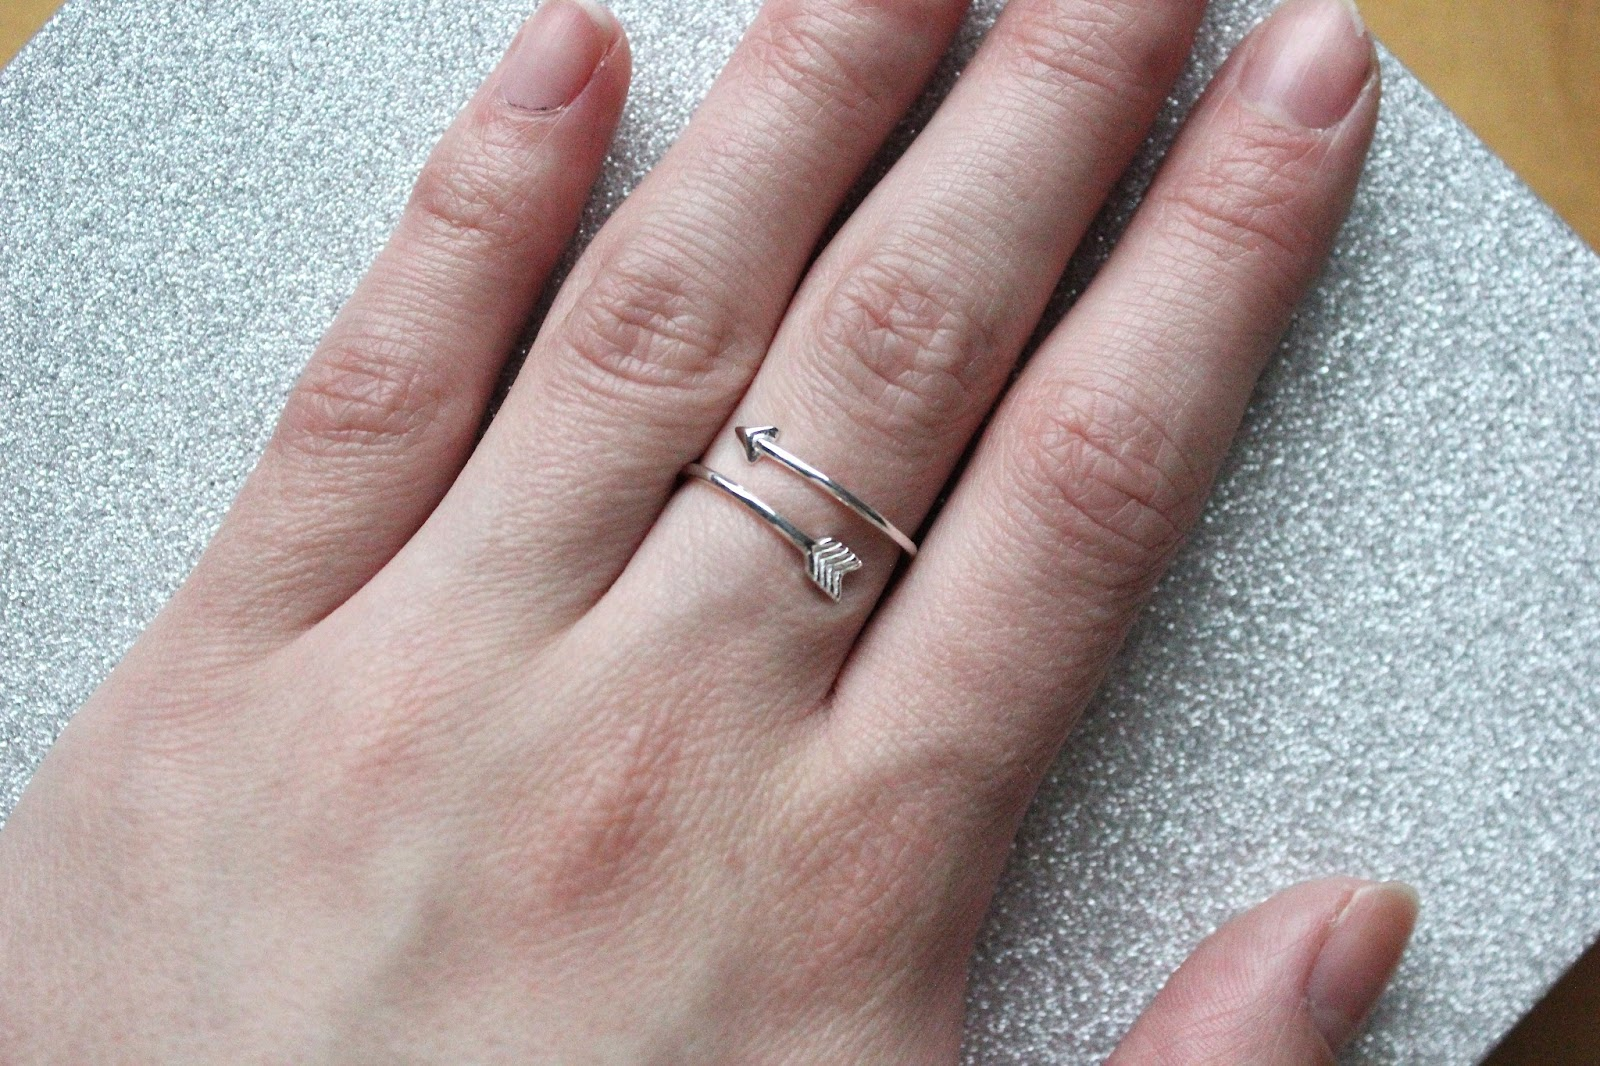 a top 5 round up of my favourite rings that I've been accessorising with over the winter months including jewellery box